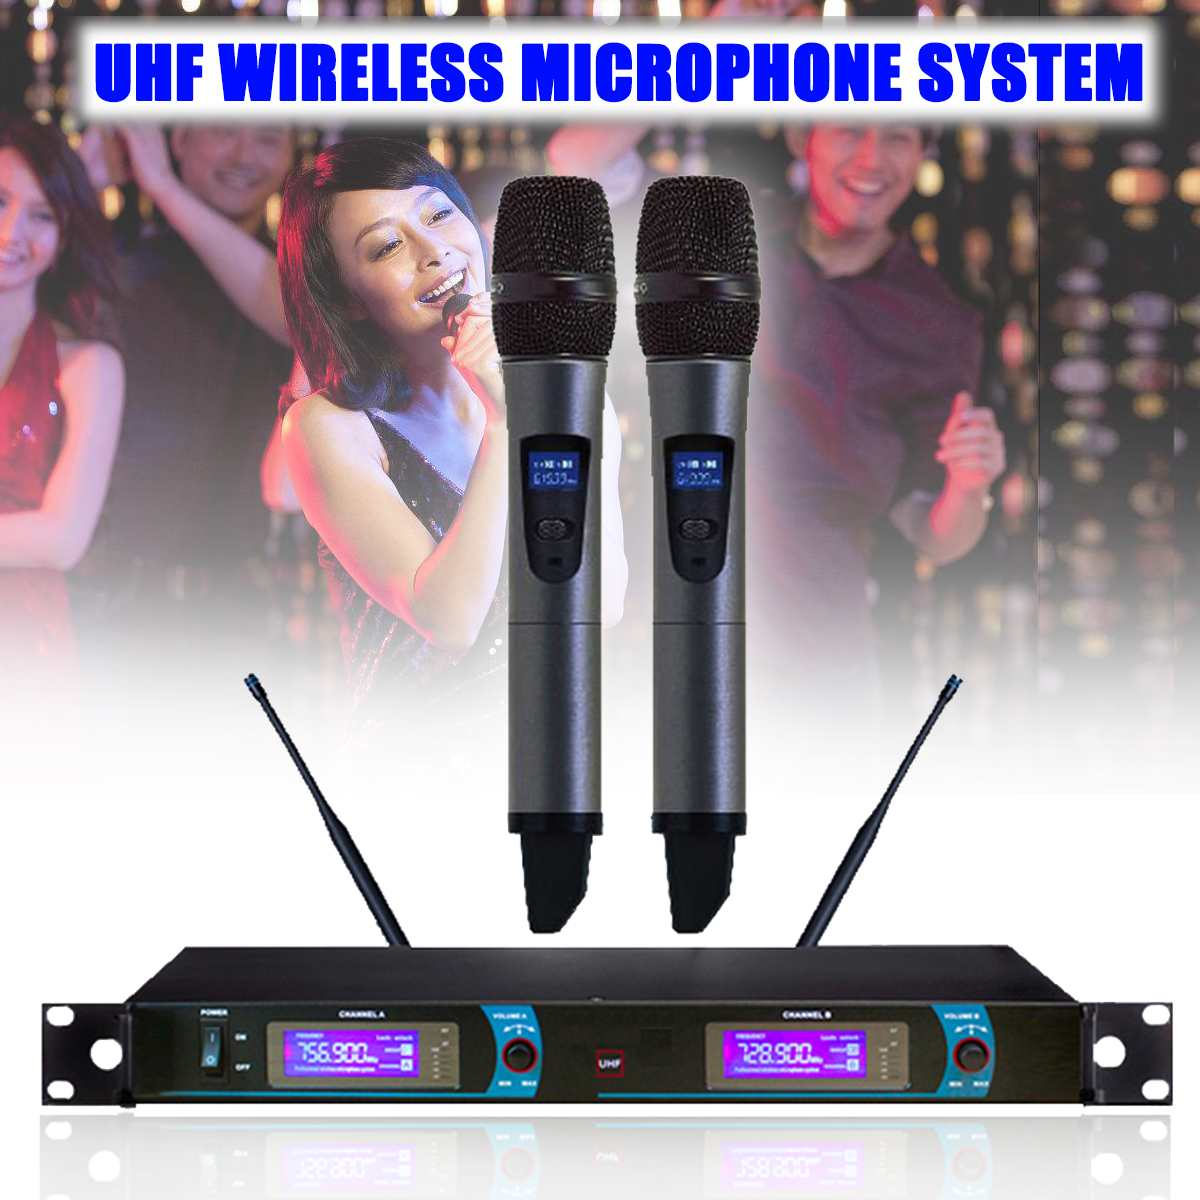 Karaoke DJ Wireless Microphone Profesional LCD Display UHF Wireless Dual Handheld Microphone Mic System Home KTVKaraoke DJ Wireless Microphone Profesional LCD Display UHF Wireless Dual Handheld Microphone Mic System Home KTV